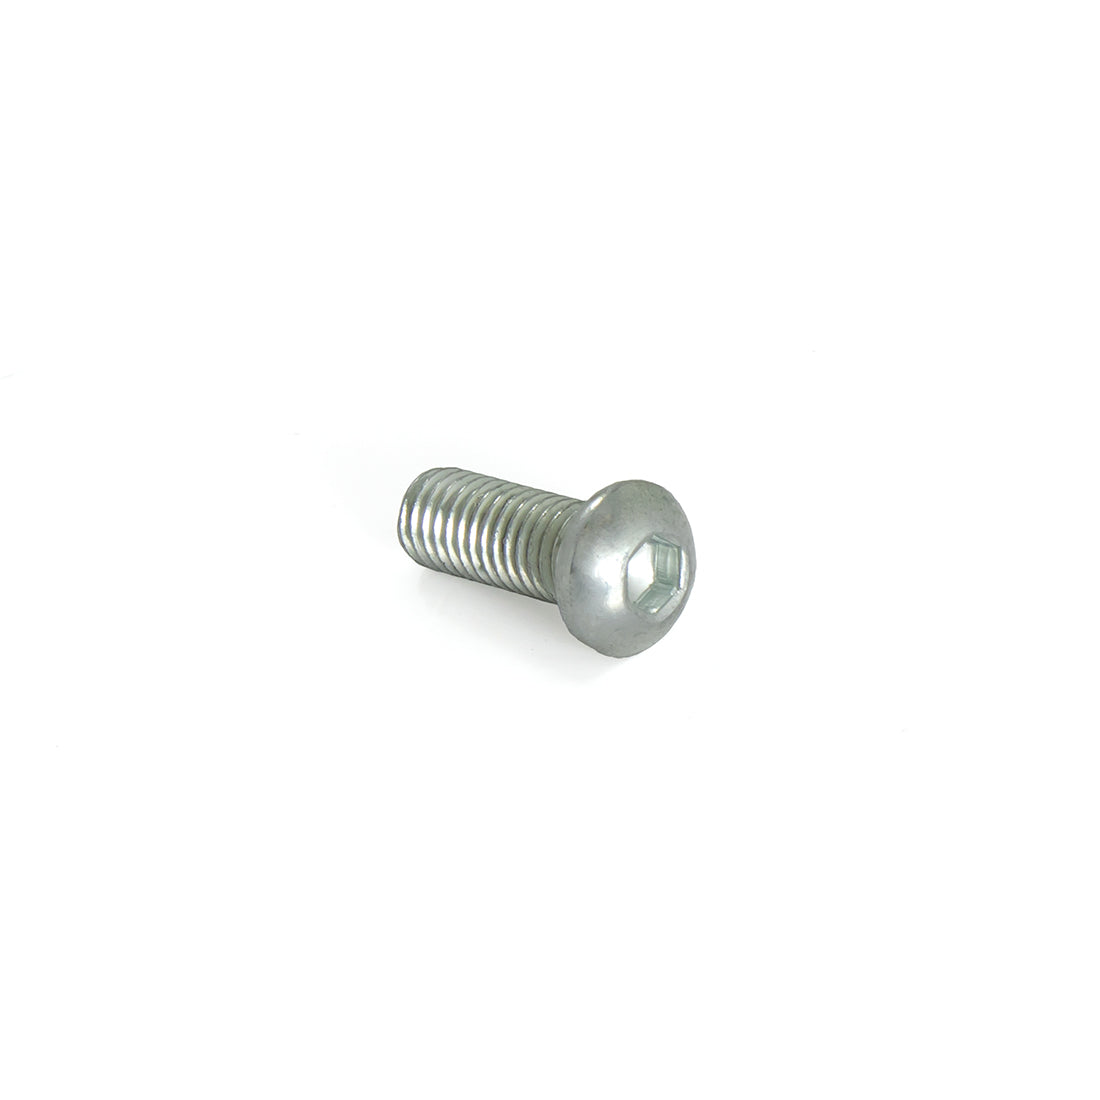 [MBA-001] M8X26 hex bolt - (For Polisher)